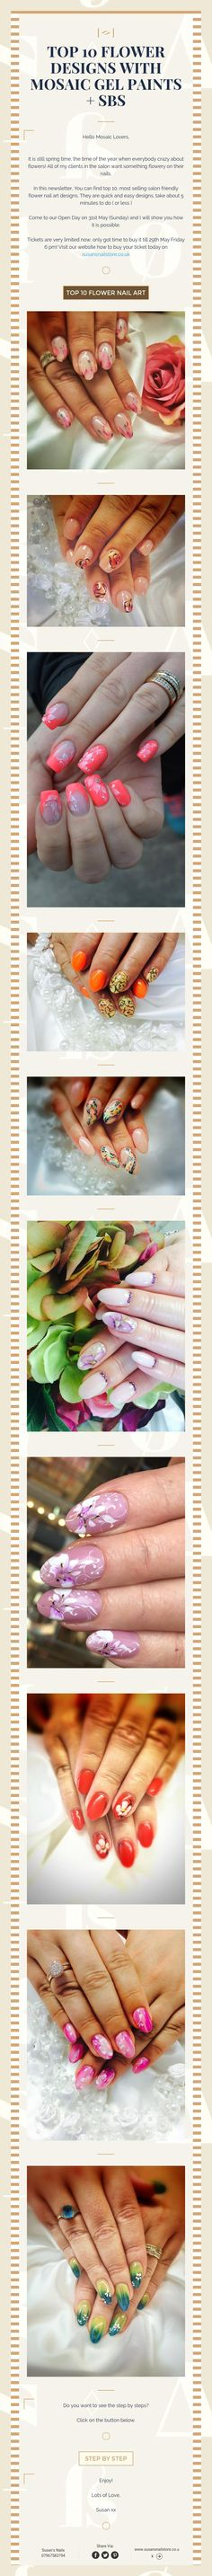 Top 10 flower designs with mosaic gel paints sbs Nail Technician, Nail Artist, Flower Designs, Nailart, Mosaic, Flowers, How To Make, Top, Painting